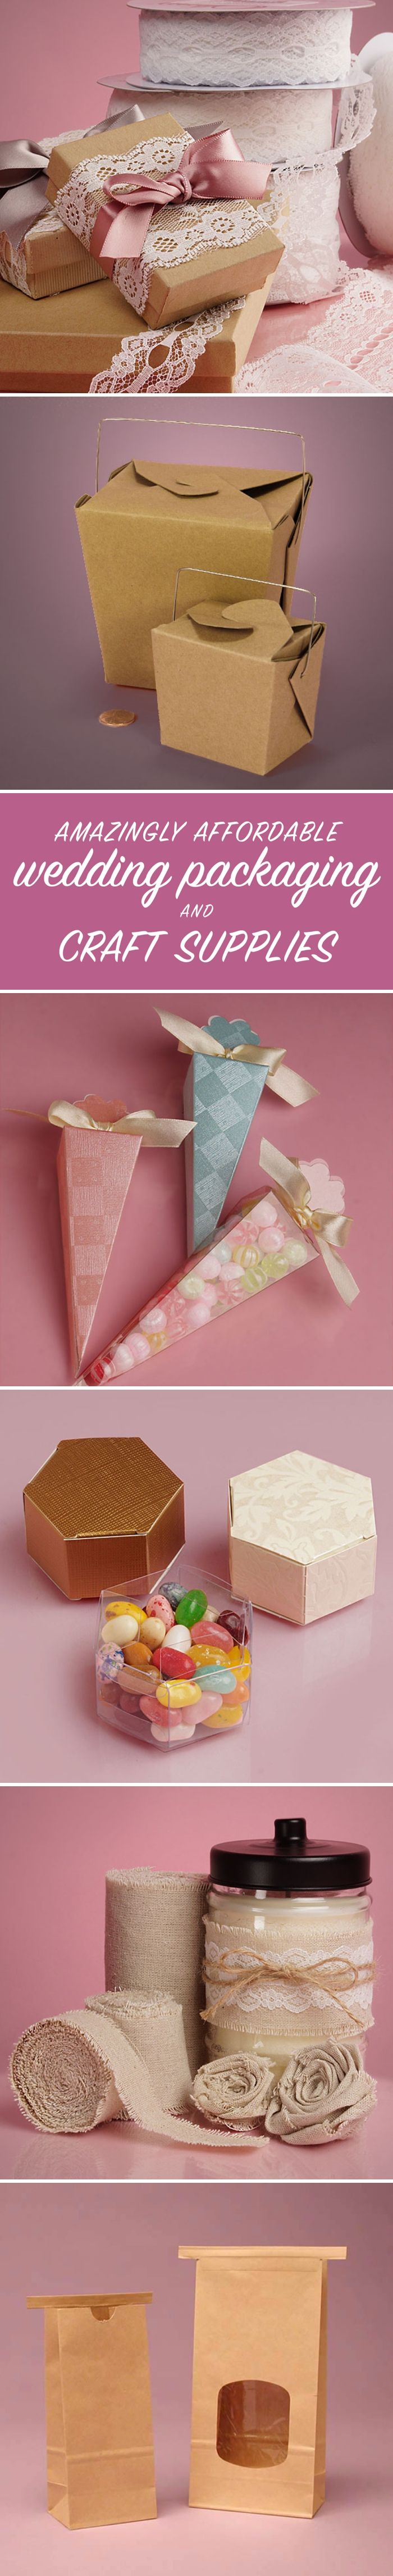 This is the BEST place to get cheap wedding favor supplies and decor ...